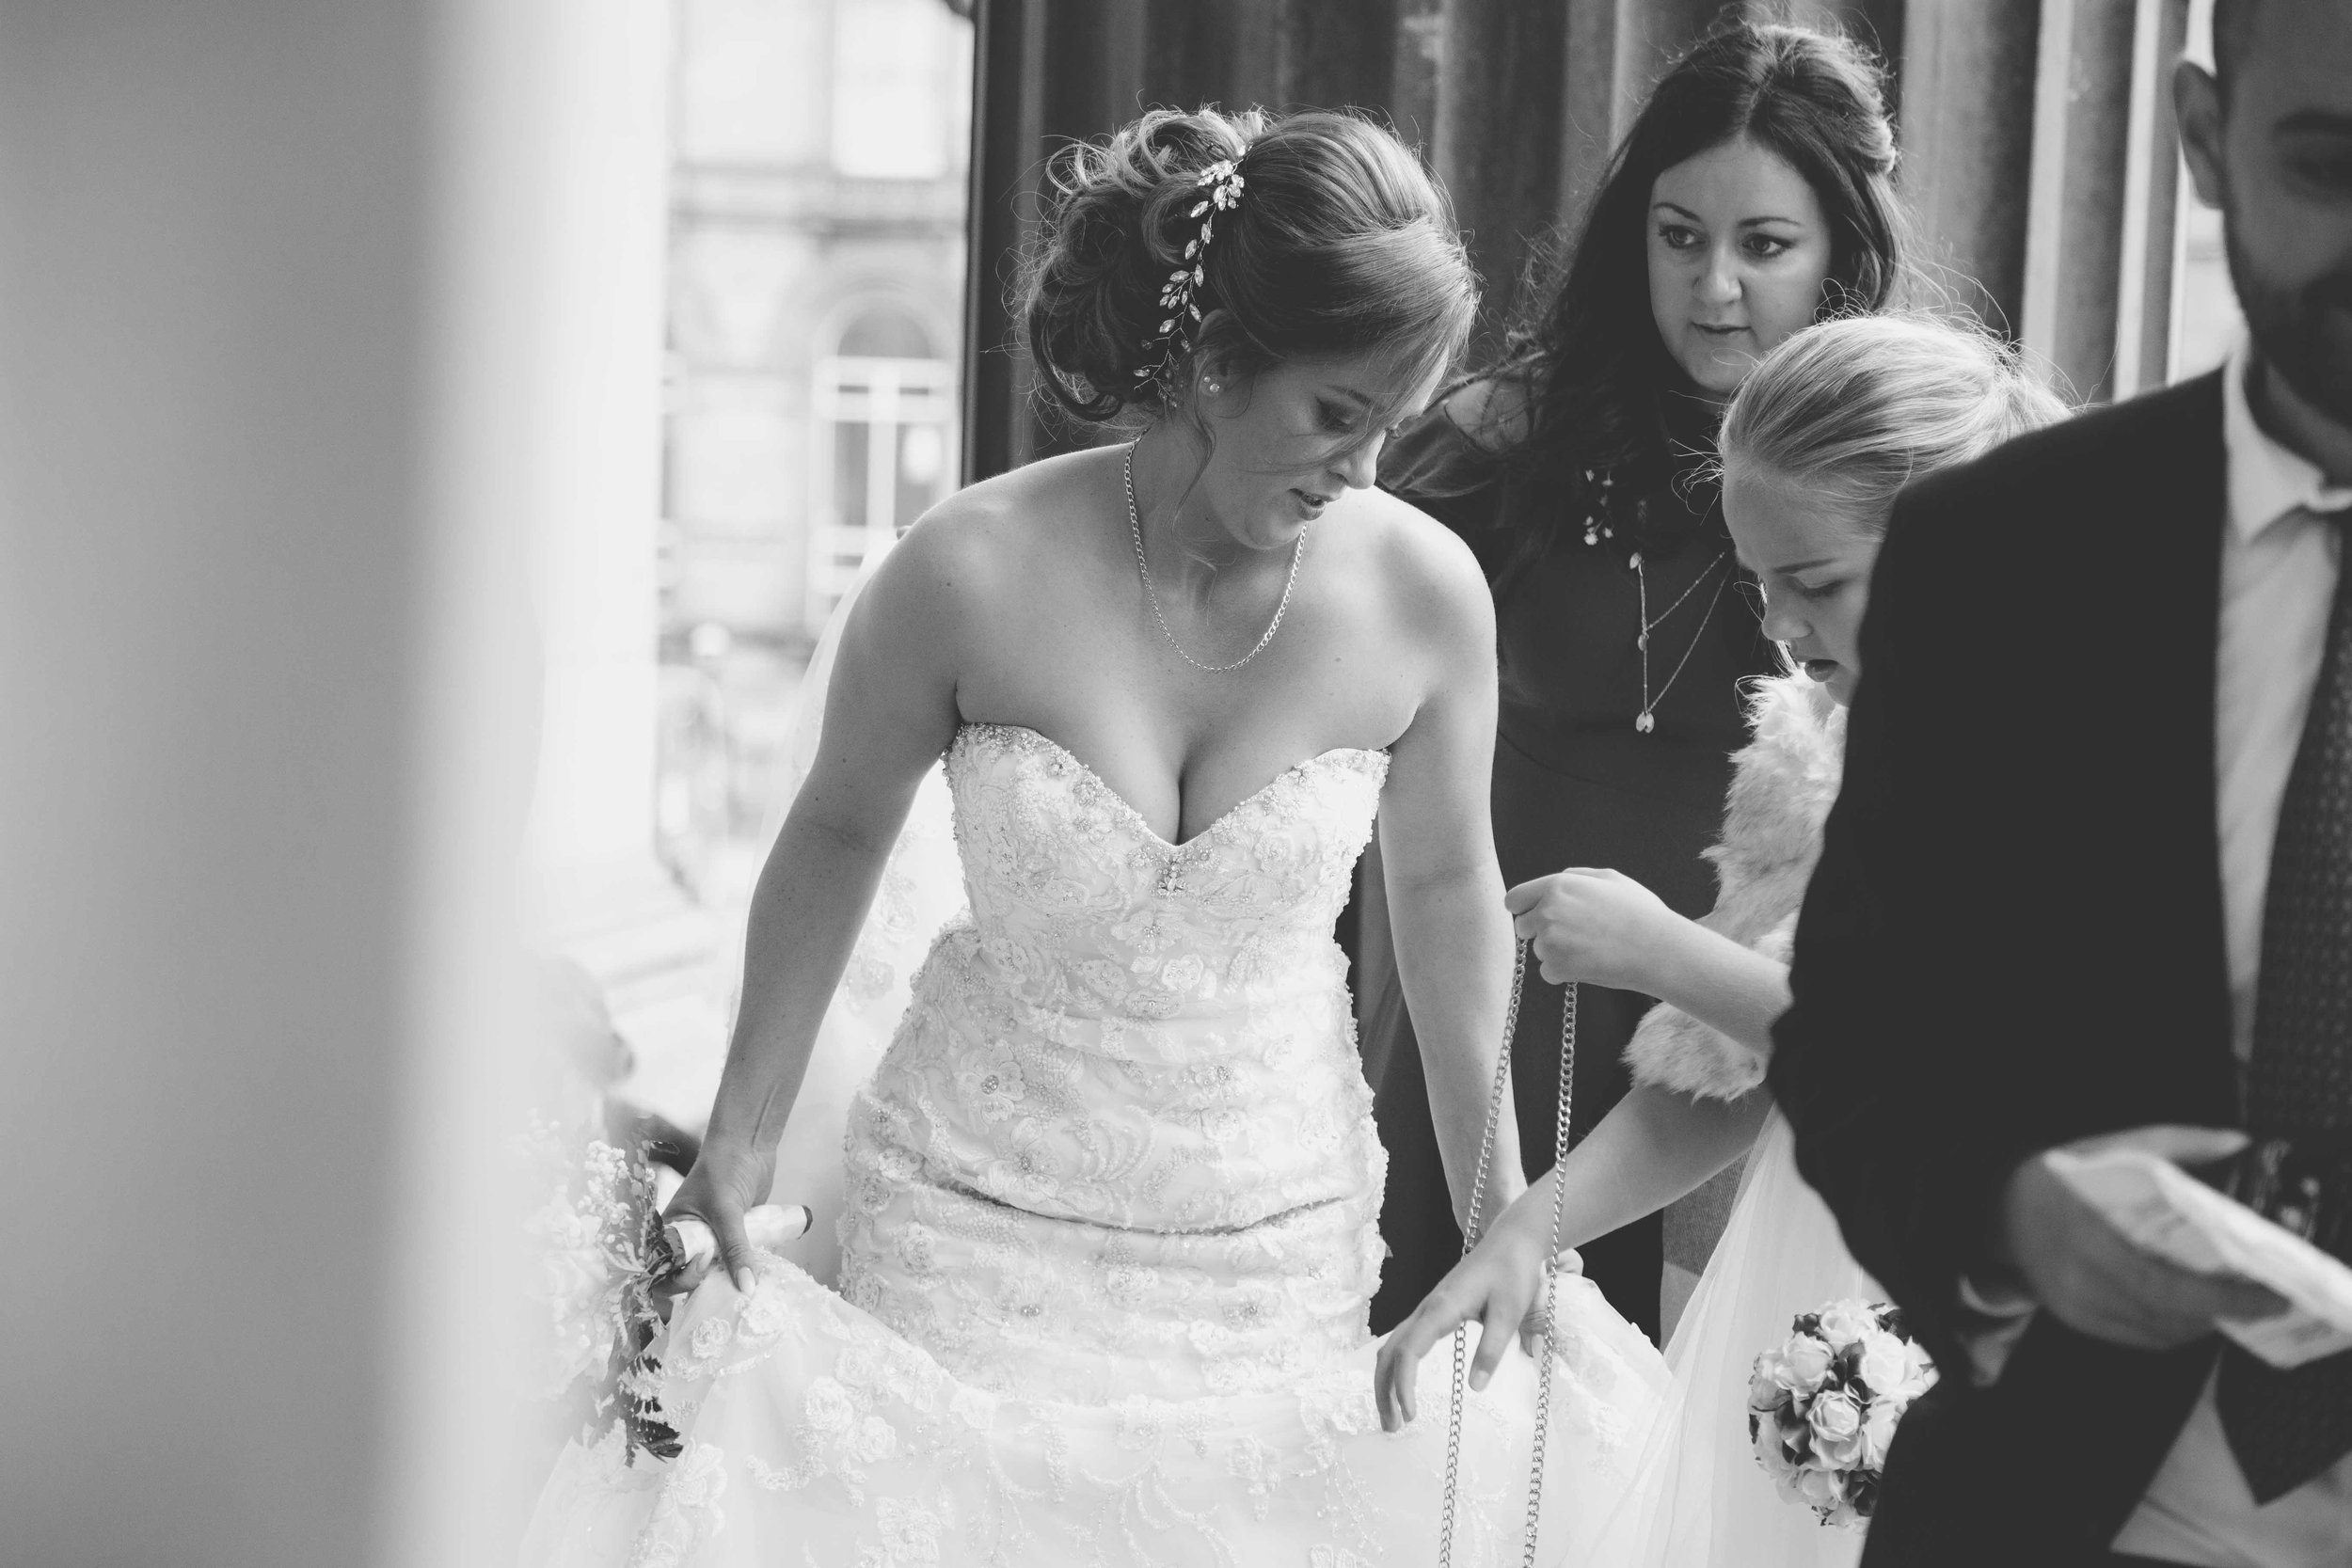 wedding-photos-at-st-georges-hall-liverpool (9 of 122).jpg